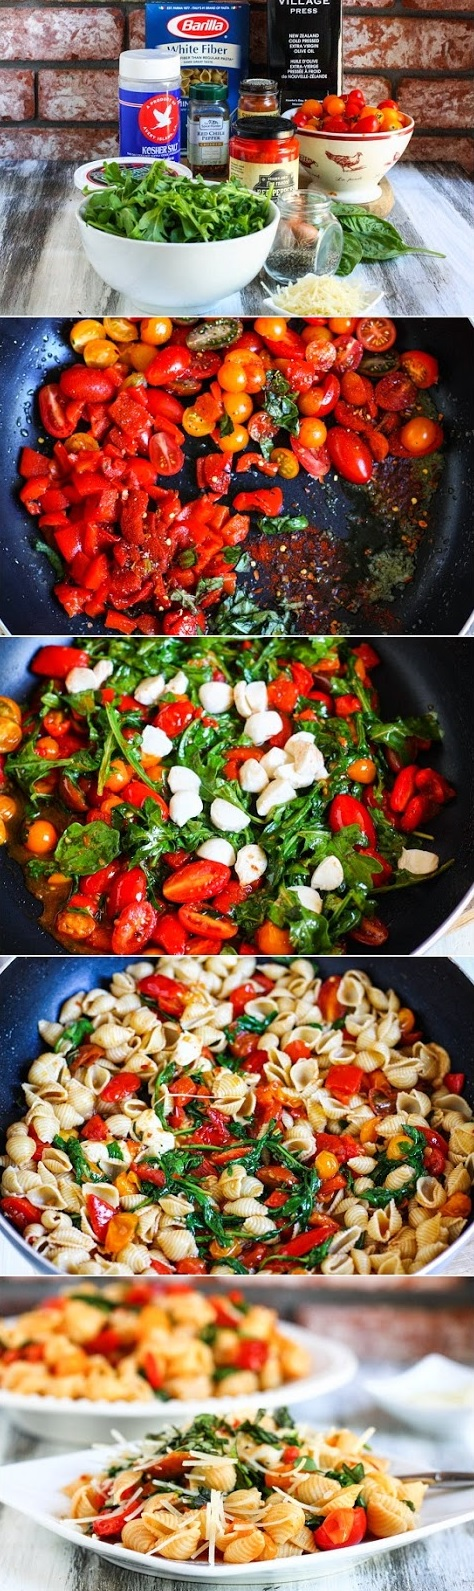 Tomato, Roasted Pepper and Arugula Pasta | Quick & Easy Recipes